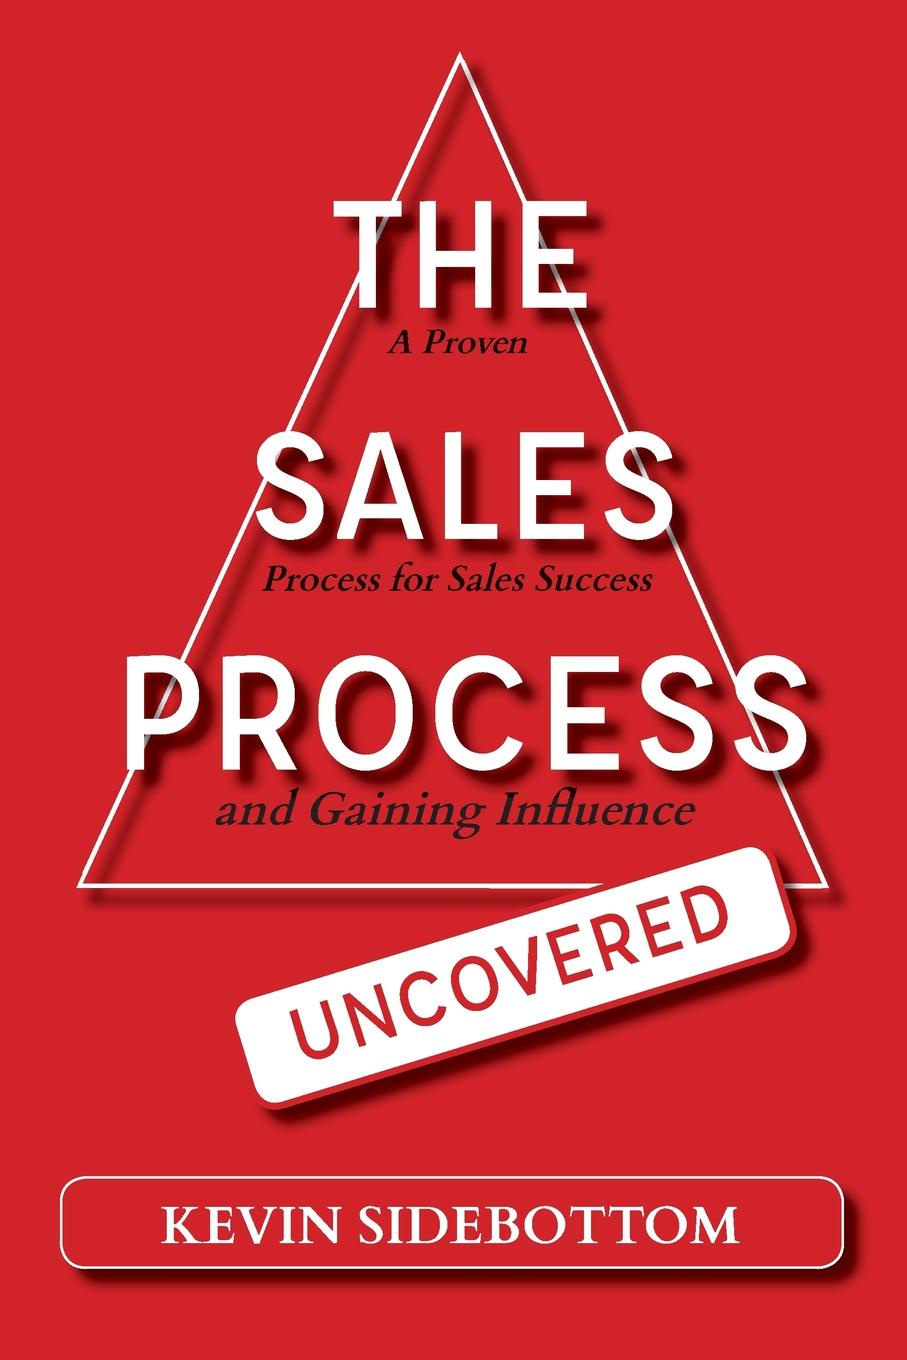 Kevin Sidebottom The Sales Process Uncovered. A Proven for Sales Success and Gaining Influence paul mccord m creating a million dollar a year sales income sales success through client referrals